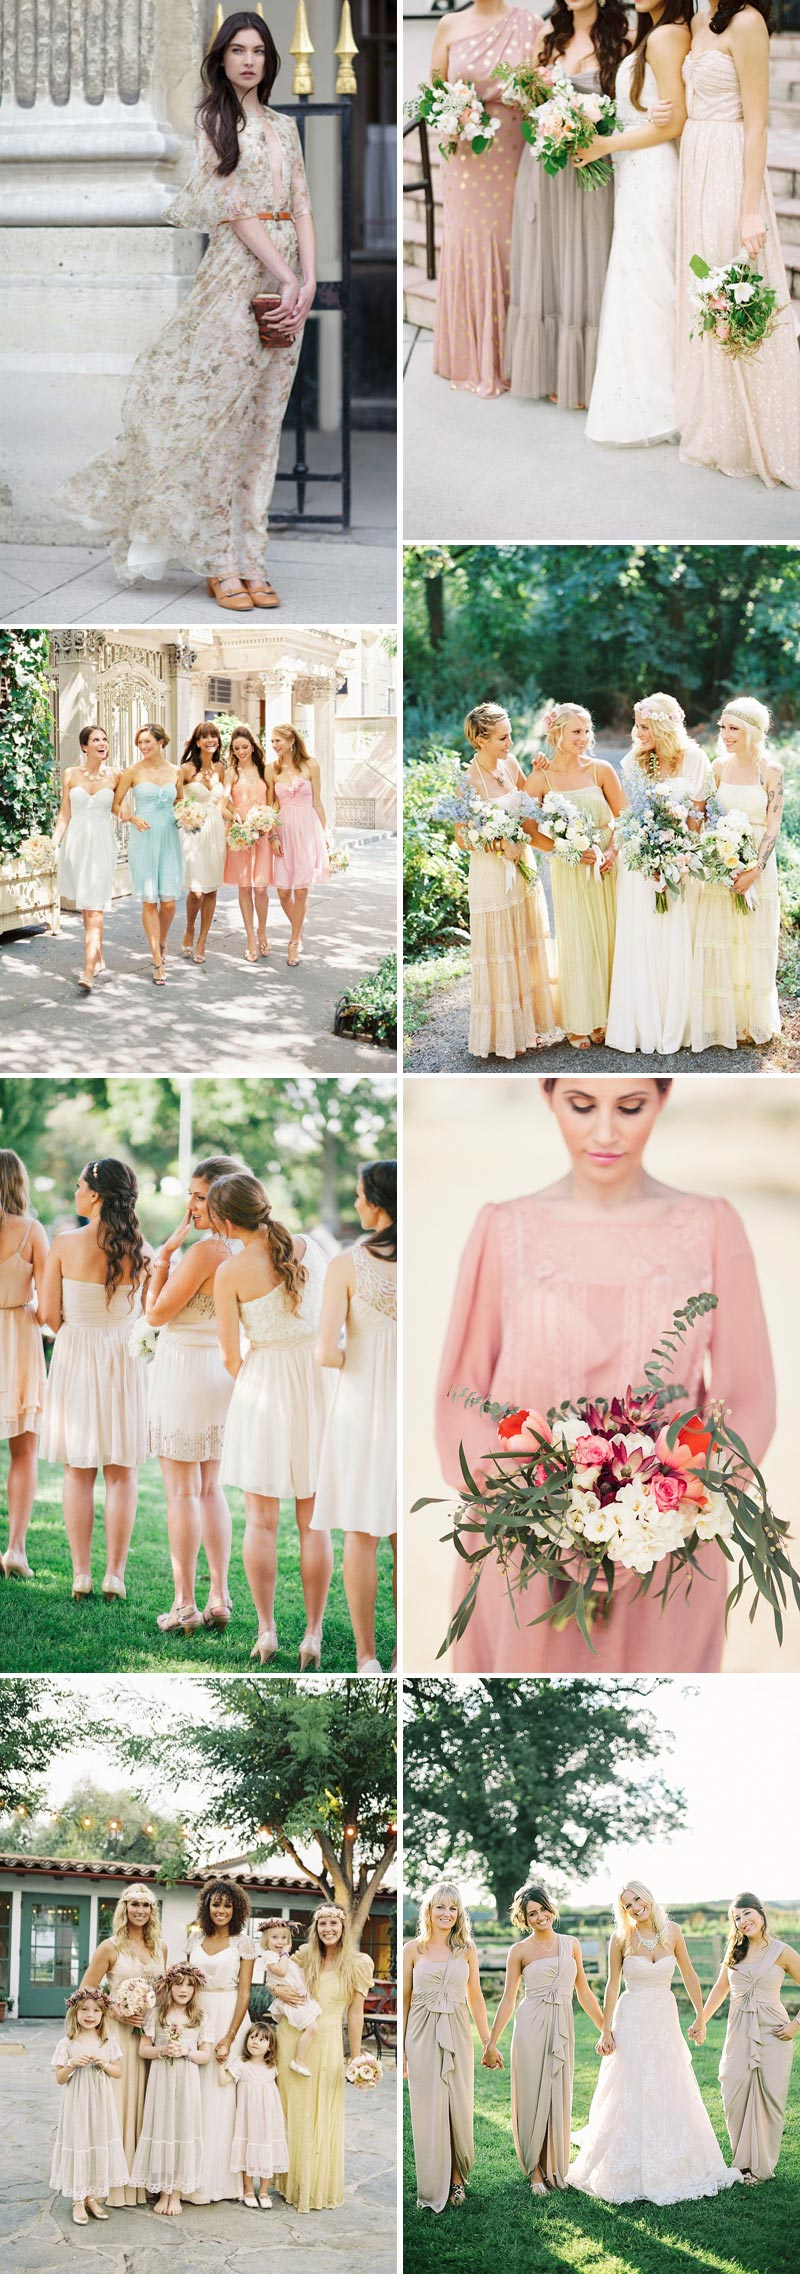 Sorbet Shades Peach, Lemon, Blue, Lime Bridesmaid Dresses Neutral